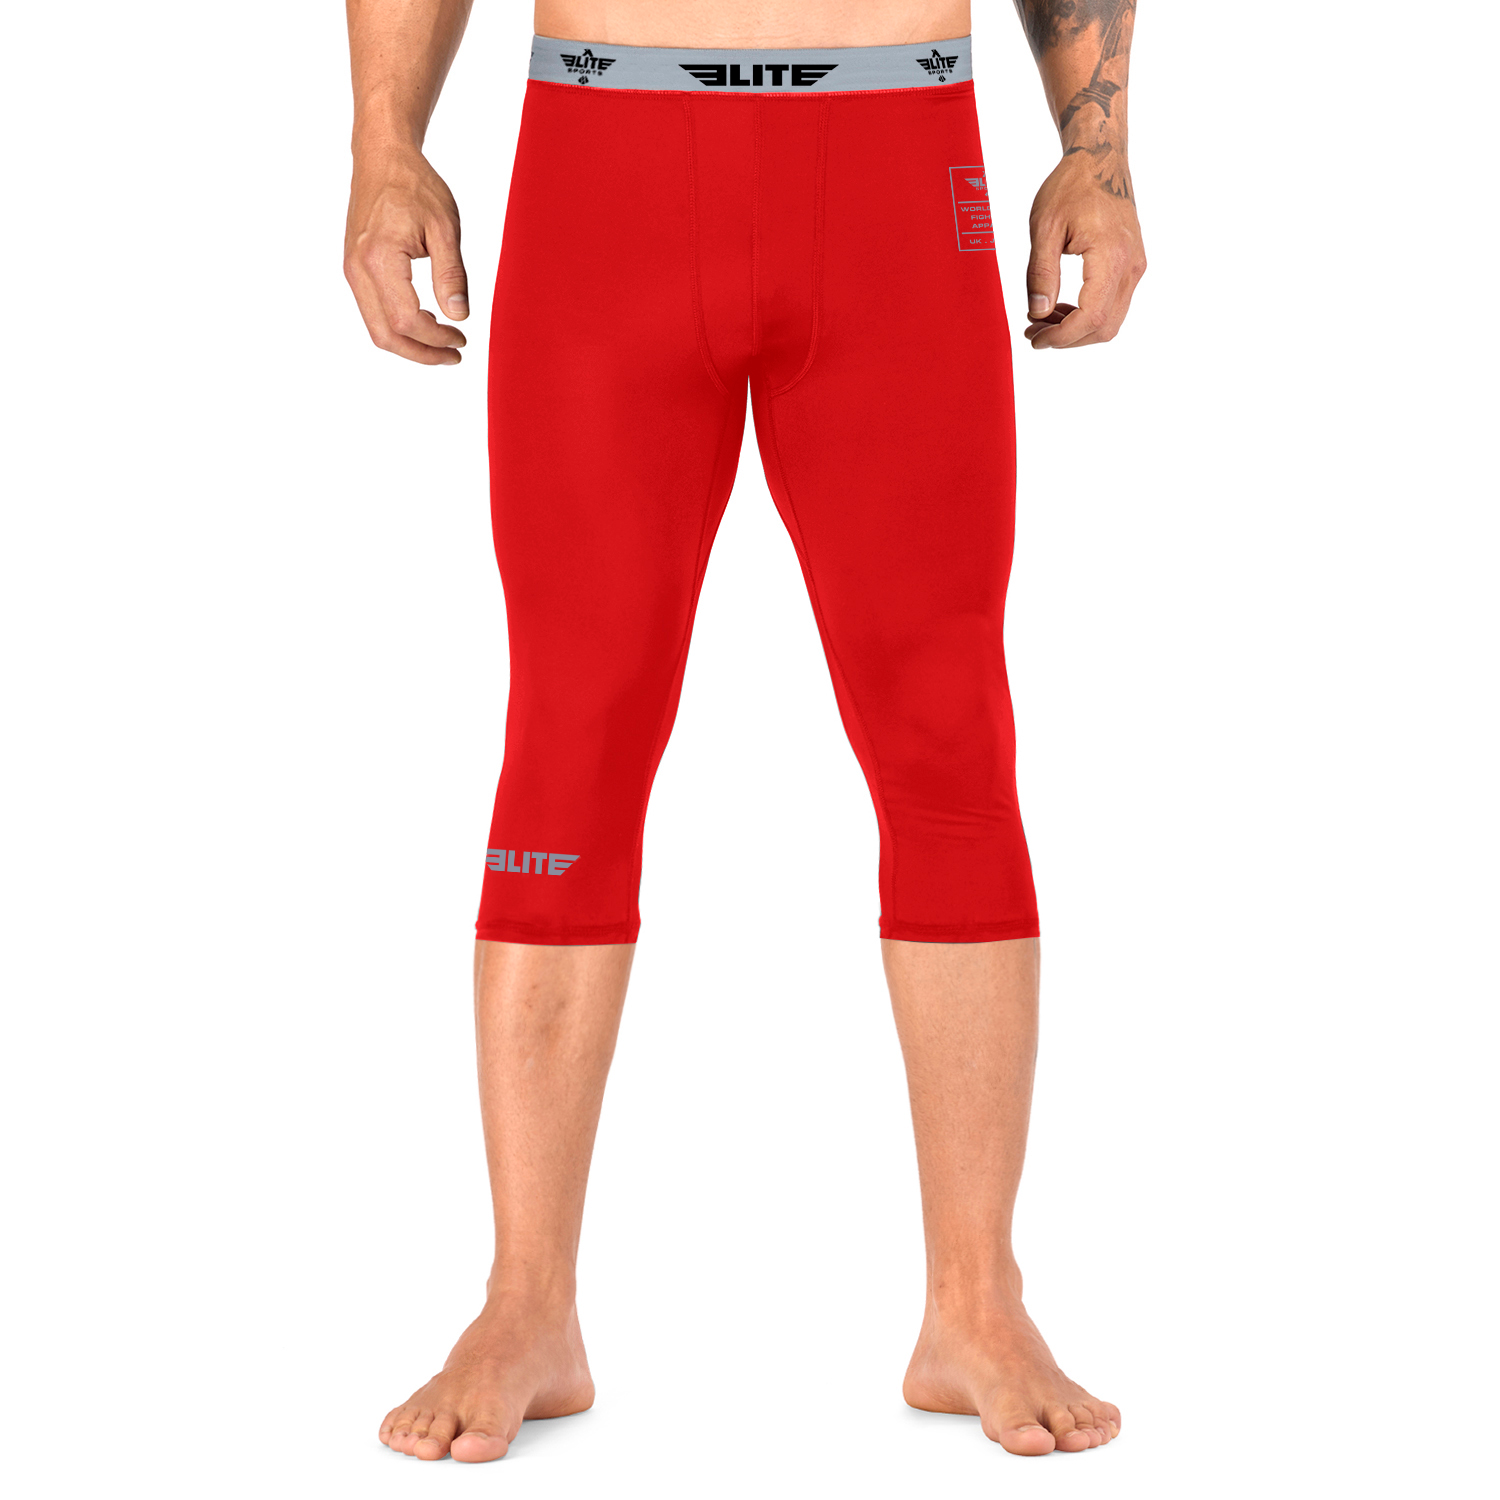 Elite Sports Three Quarter Red Compression Karate Spat Pants